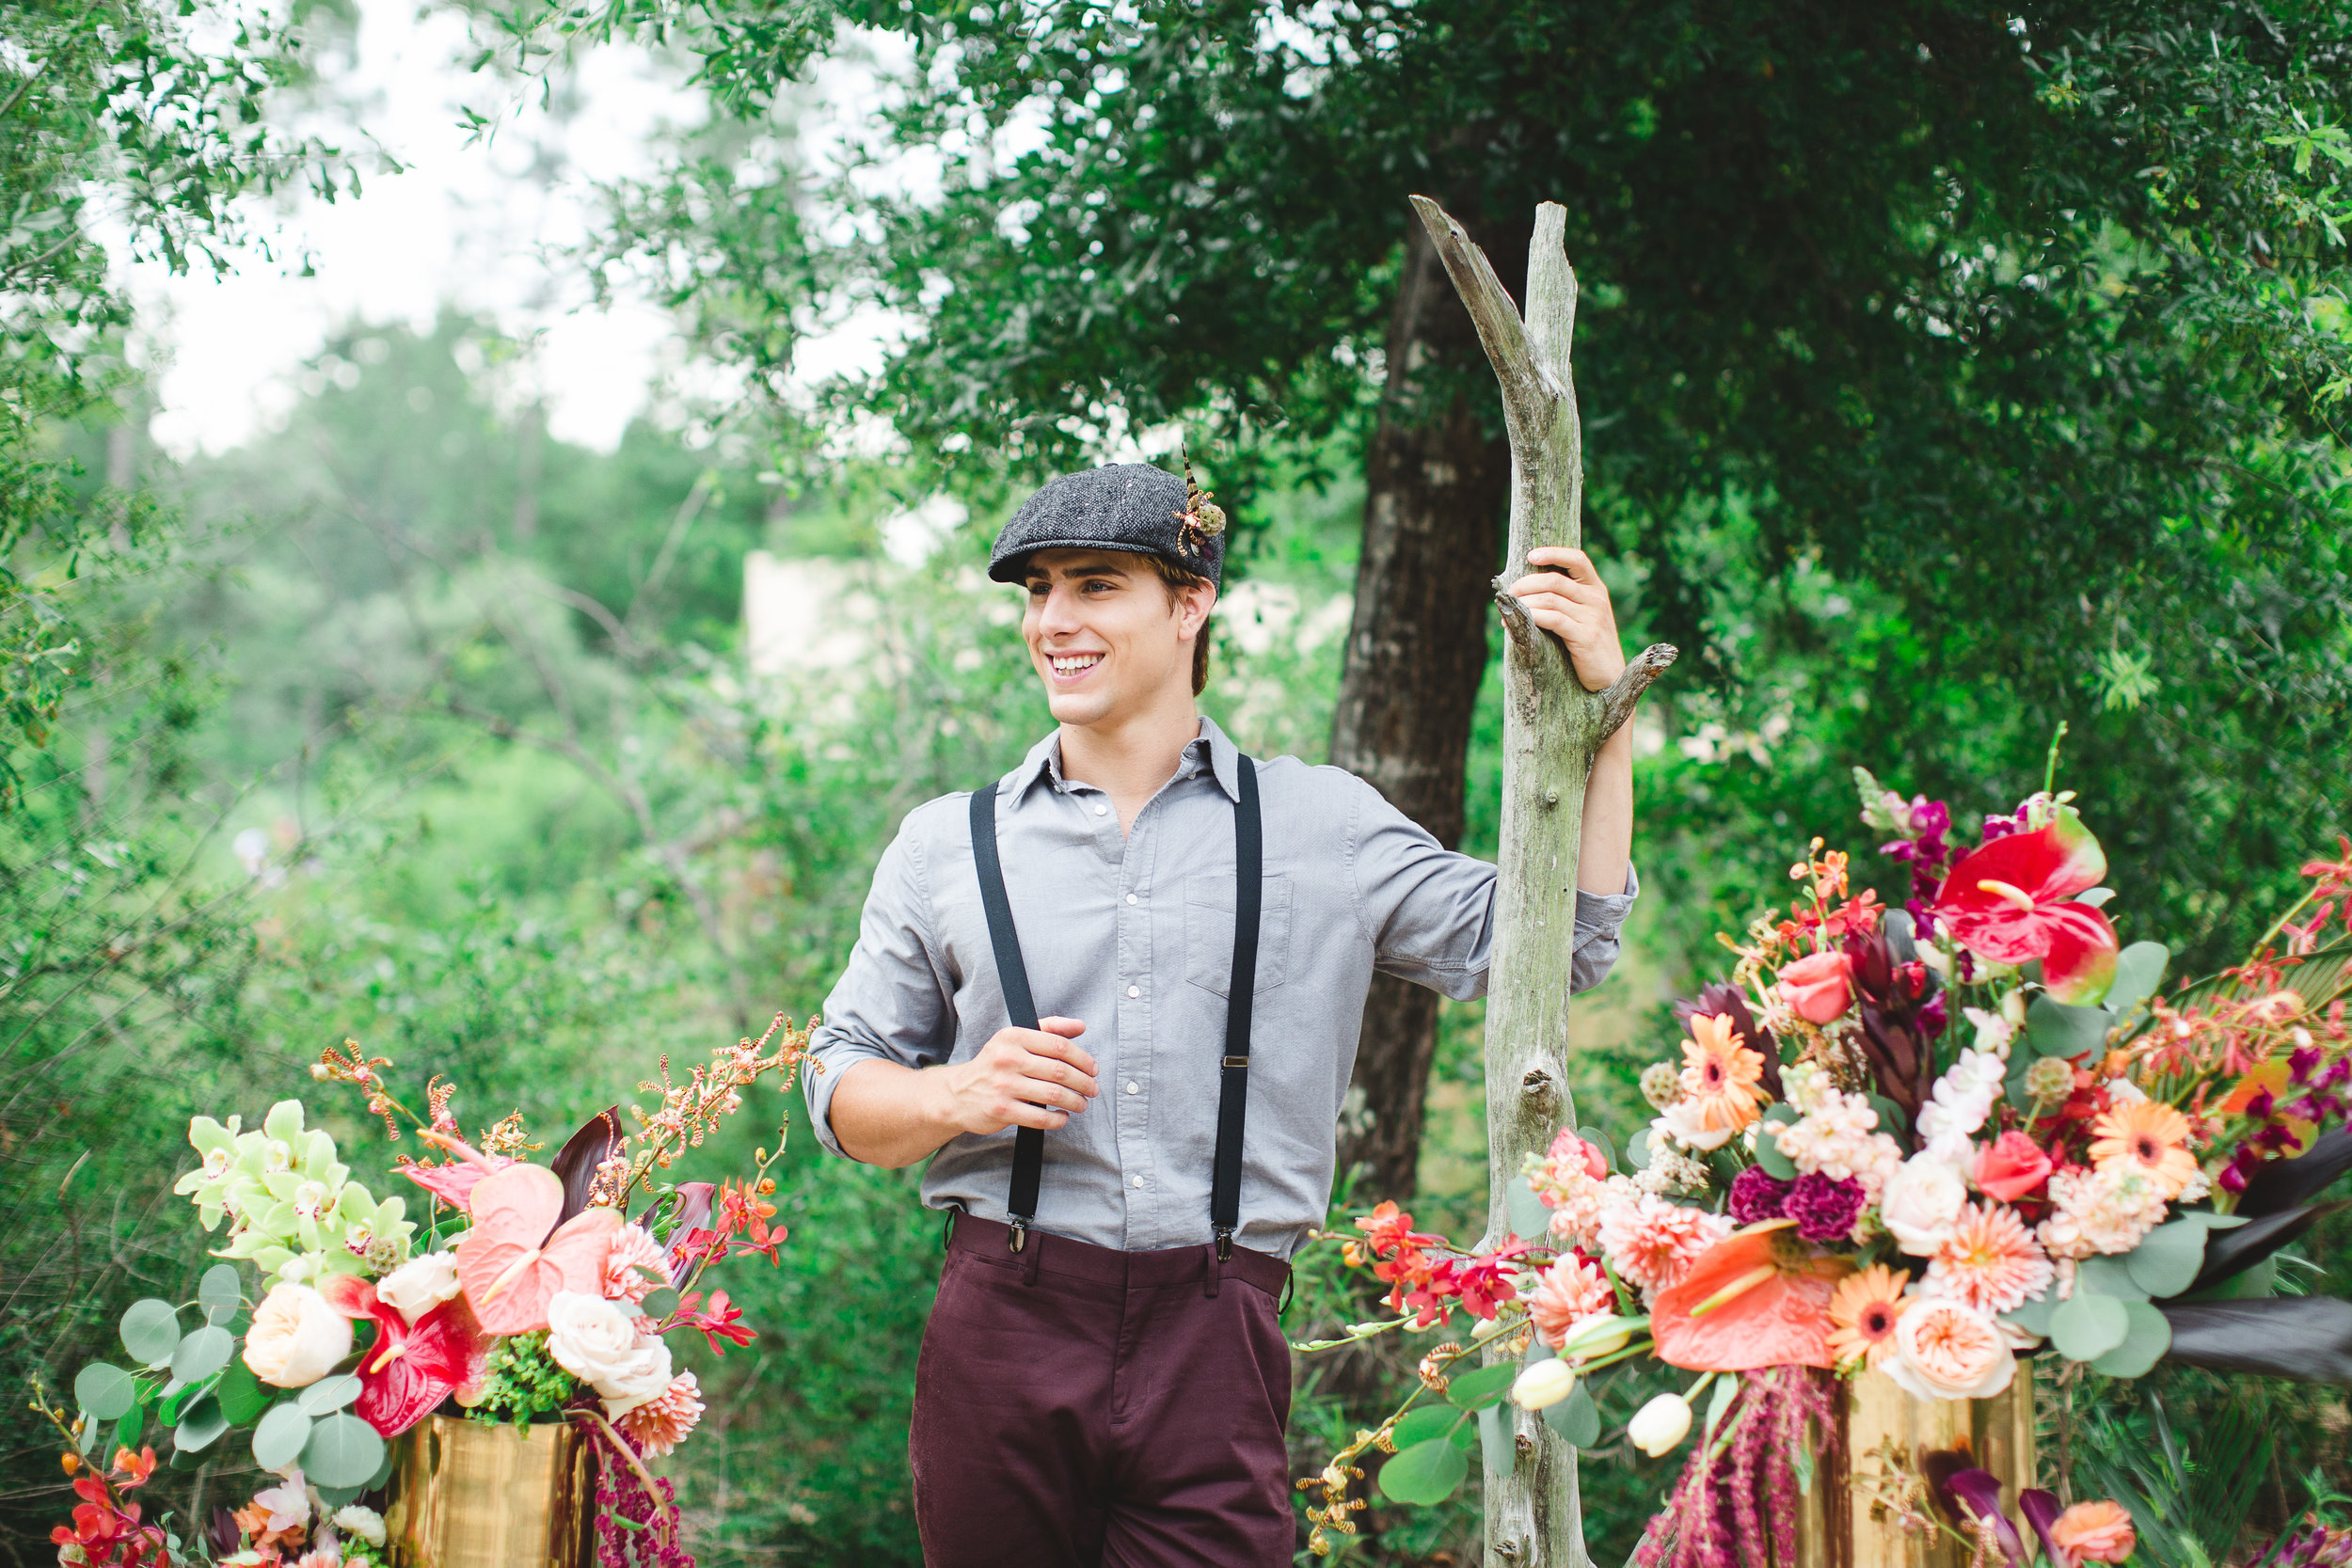 izzy-hudgins-photography-emily-burton-designs-ivory-and-beau-bridal-boutique-daughters-of-simone-sonje-jenny-yoo-bridesmaids-glamping-wedding-boho-wedding-outdoor-wedding-coldwater-gardens-wedding-savannah-bridal-boutique-savannah-wedding-planner-23.jpg